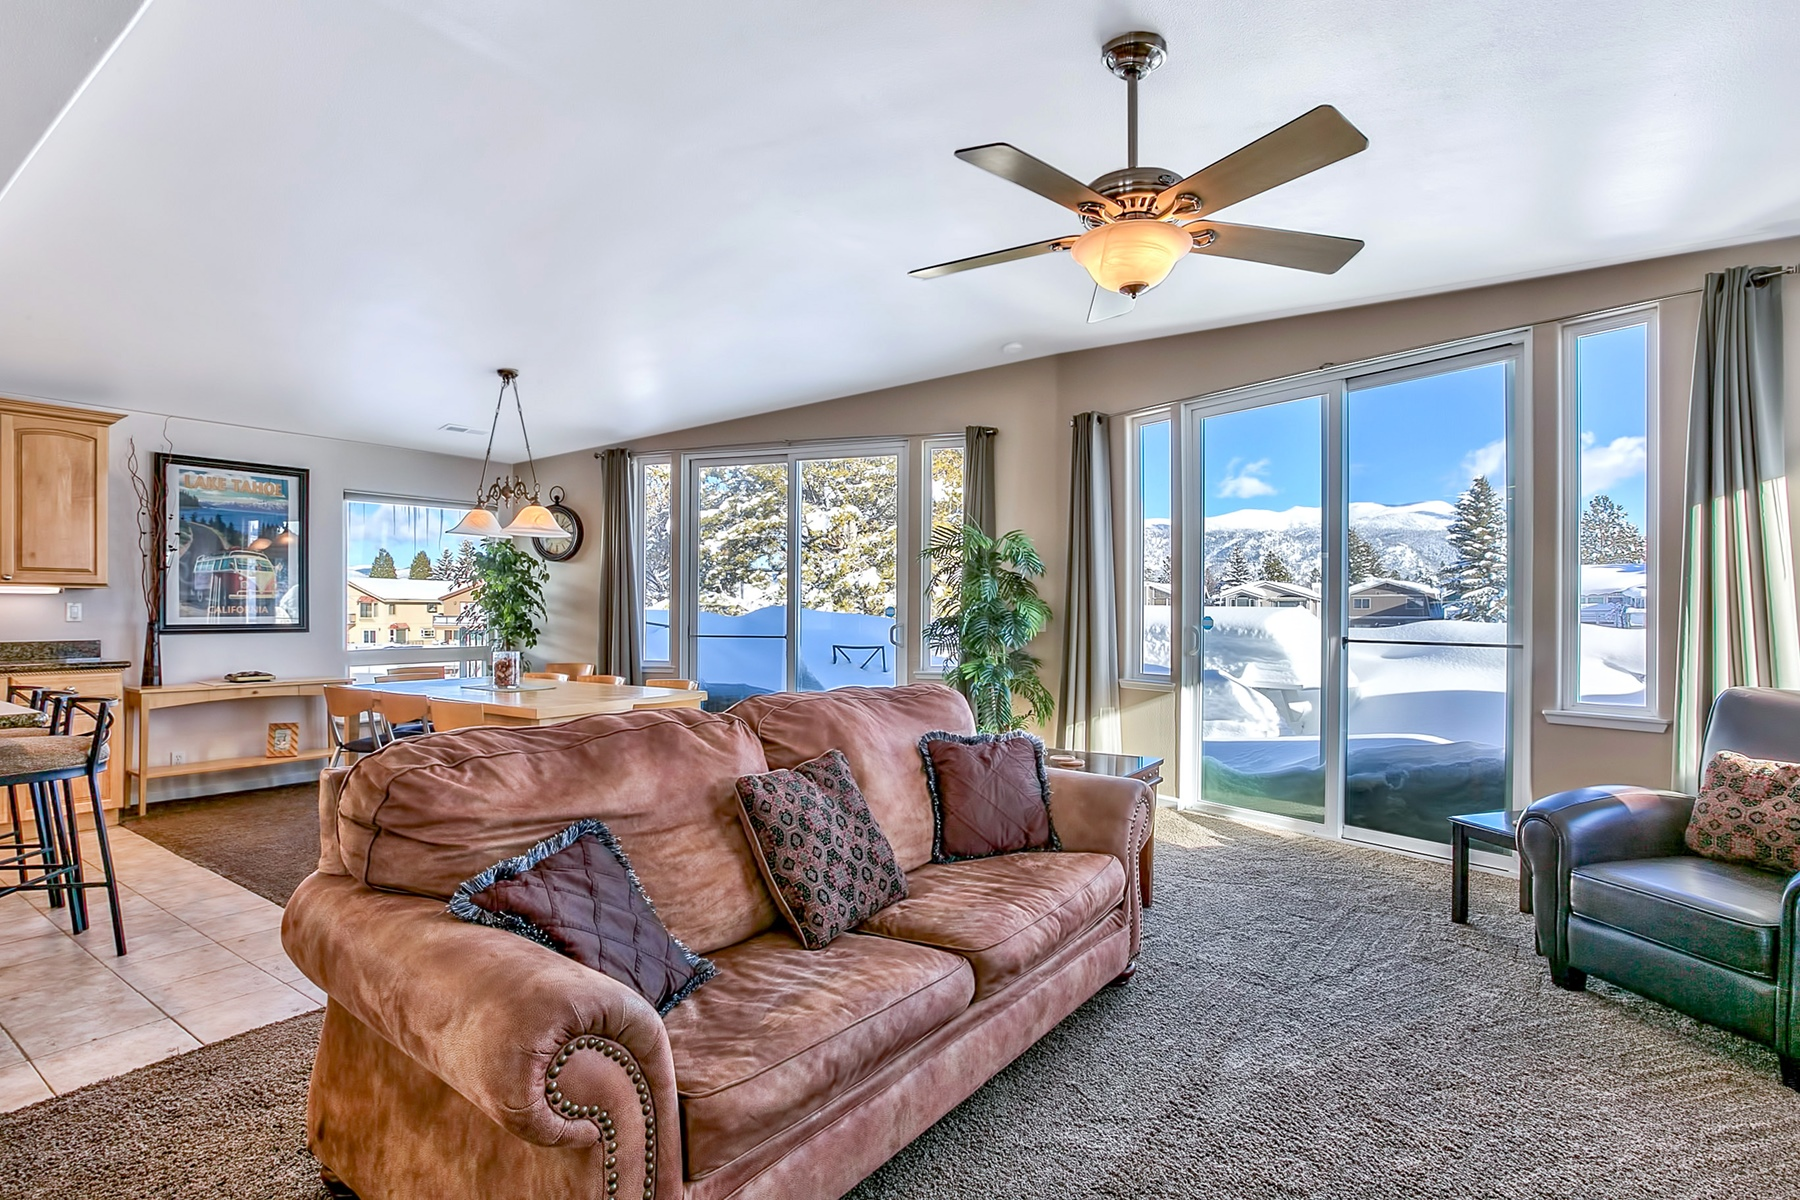 Additional photo for property listing at 1759 Venice Drive  South Lake Tahoe, California 96150 United States